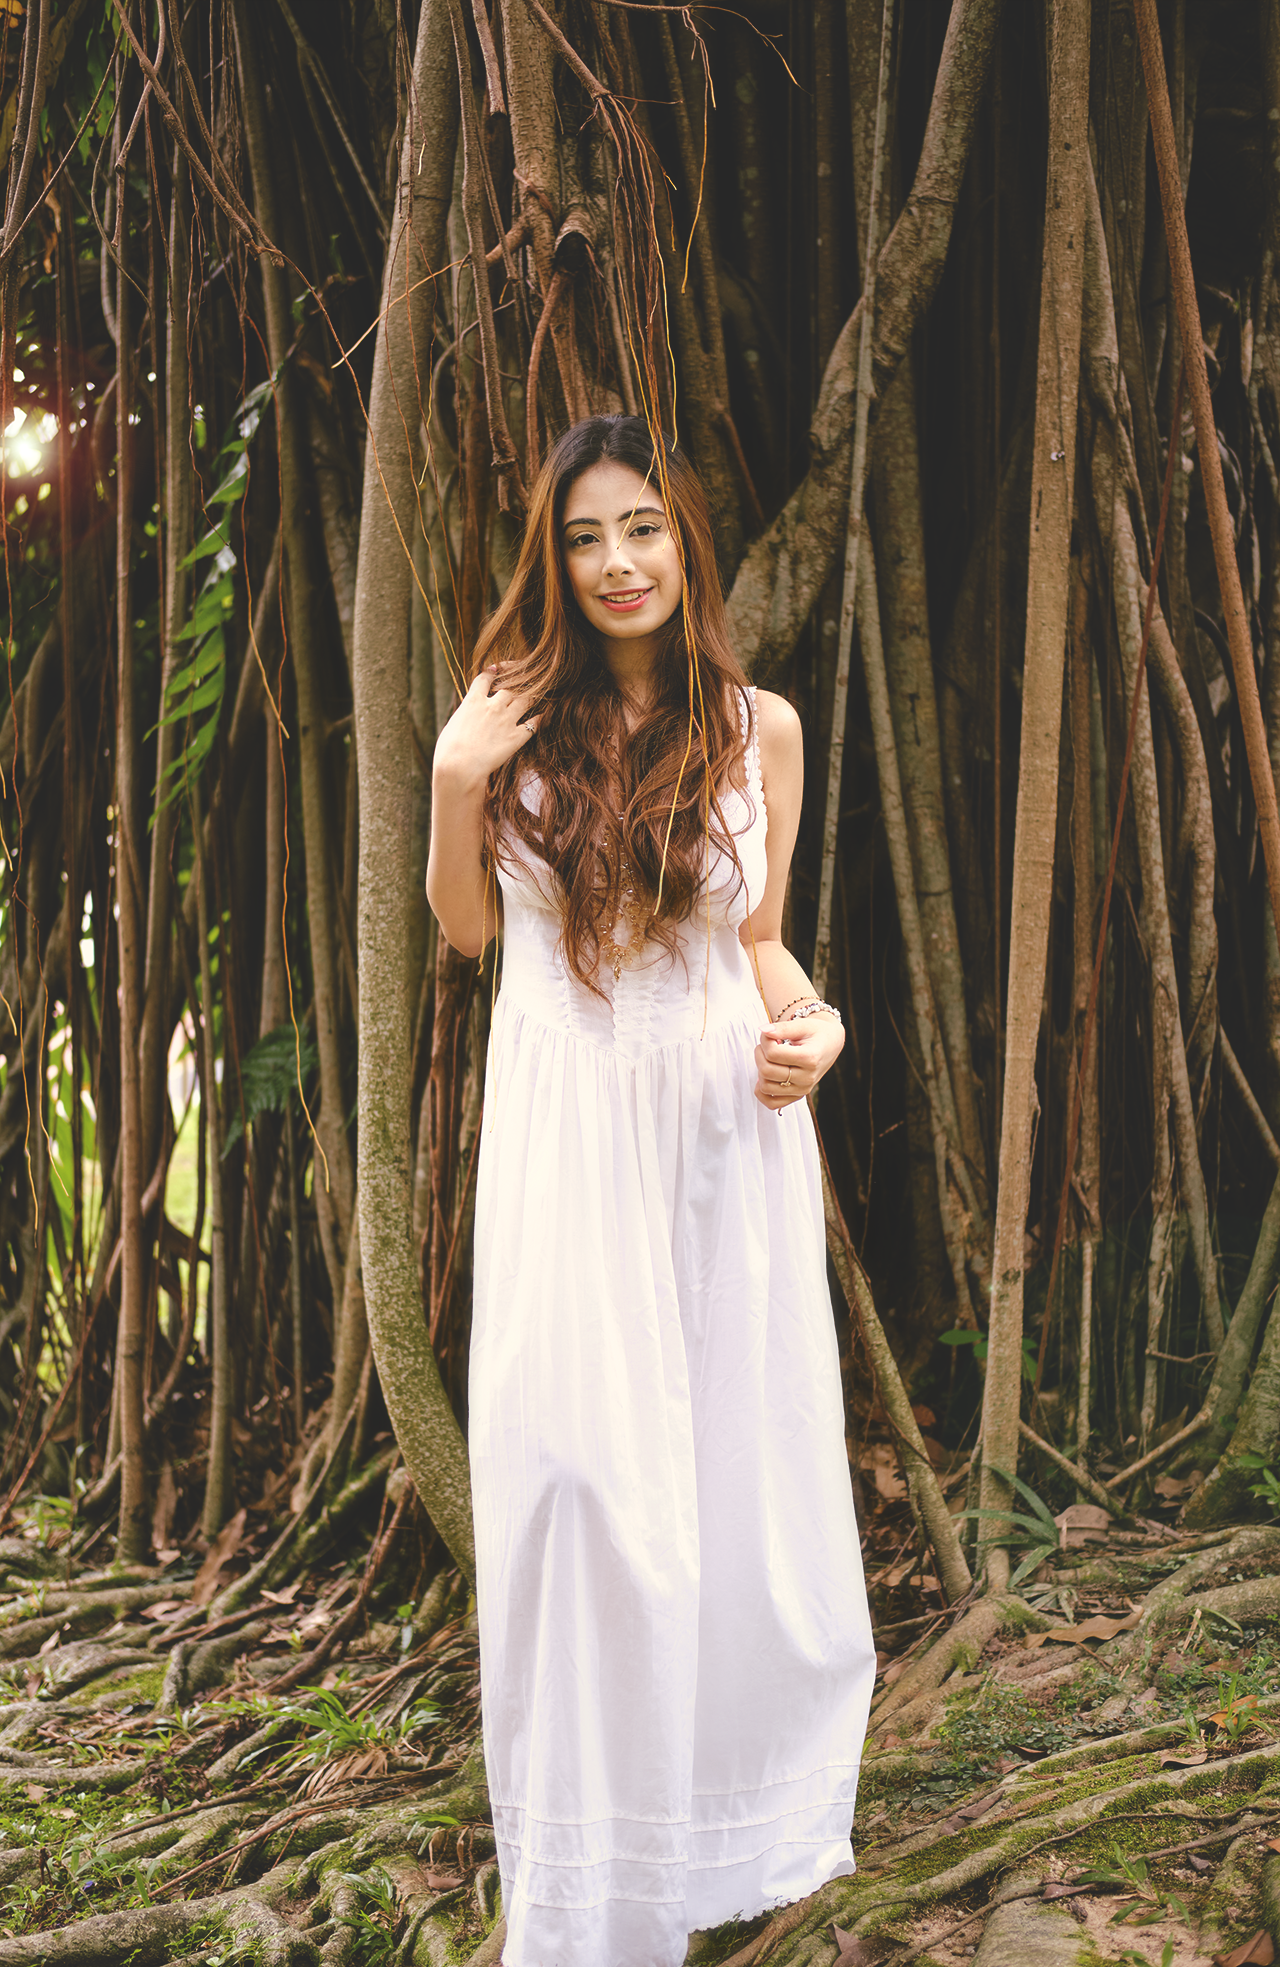 KL Outdoor Photoshoot - Enchanted Theme